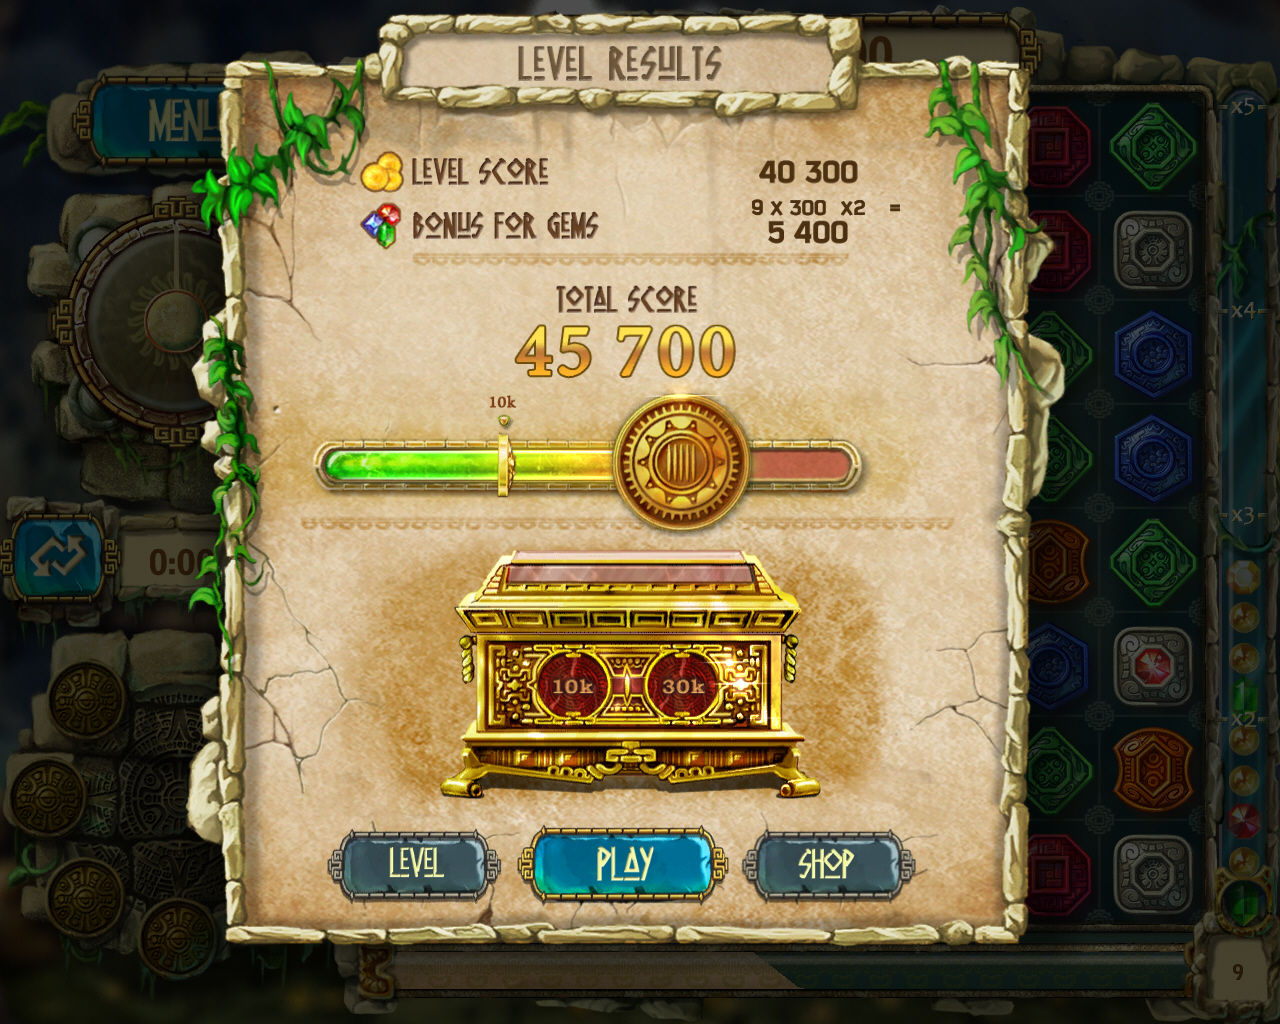 The Treasures of Montezuma 3 Windows My first medal! Look at the Bonus for Gems. Each is worth 300 and I got 9 of them. I need to improve on that.